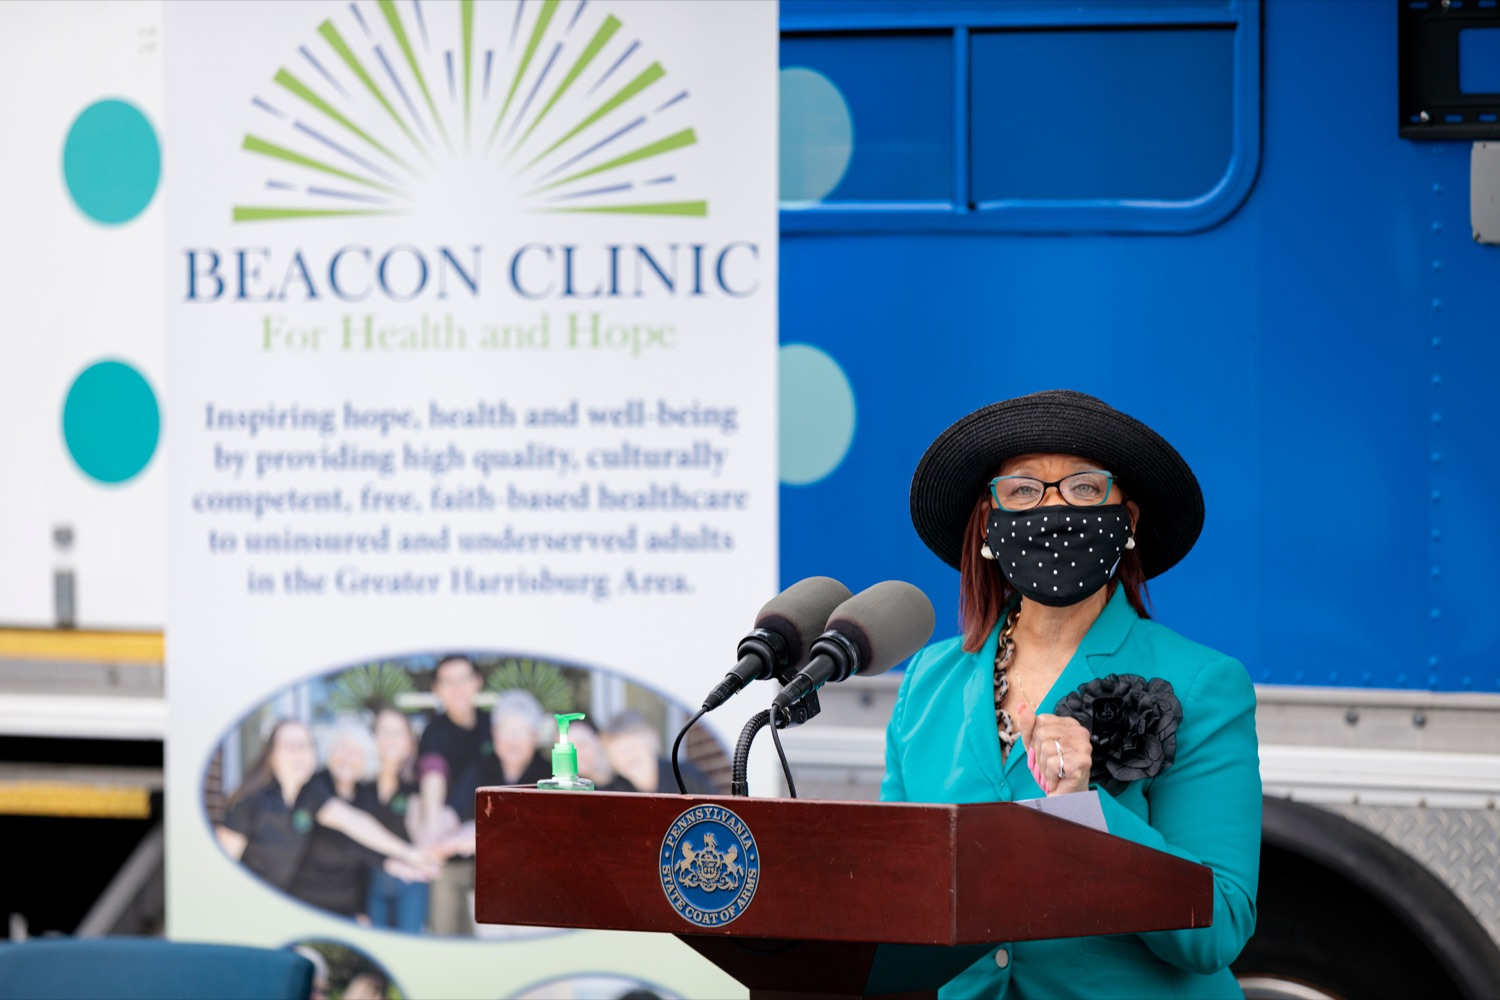 """<a href=""""https://filesource.wostreaming.net/commonwealthofpa/photo/18675_DOH_Beacon_Clinic_NK_012.jpg"""" target=""""_blank"""">⇣Download Photo<br></a>Independence Blue Cross Foundation President Rev. Dr. Lorina Marshall-Blake speaks during a press conference, which discussed an upcoming COVID-19 mobile response vaccination tour to provide vaccinations and education to minority and underserved communities across the commonwealth, outside of Beacon Clinic in Harrisburg on Monday, April 12, 2021."""